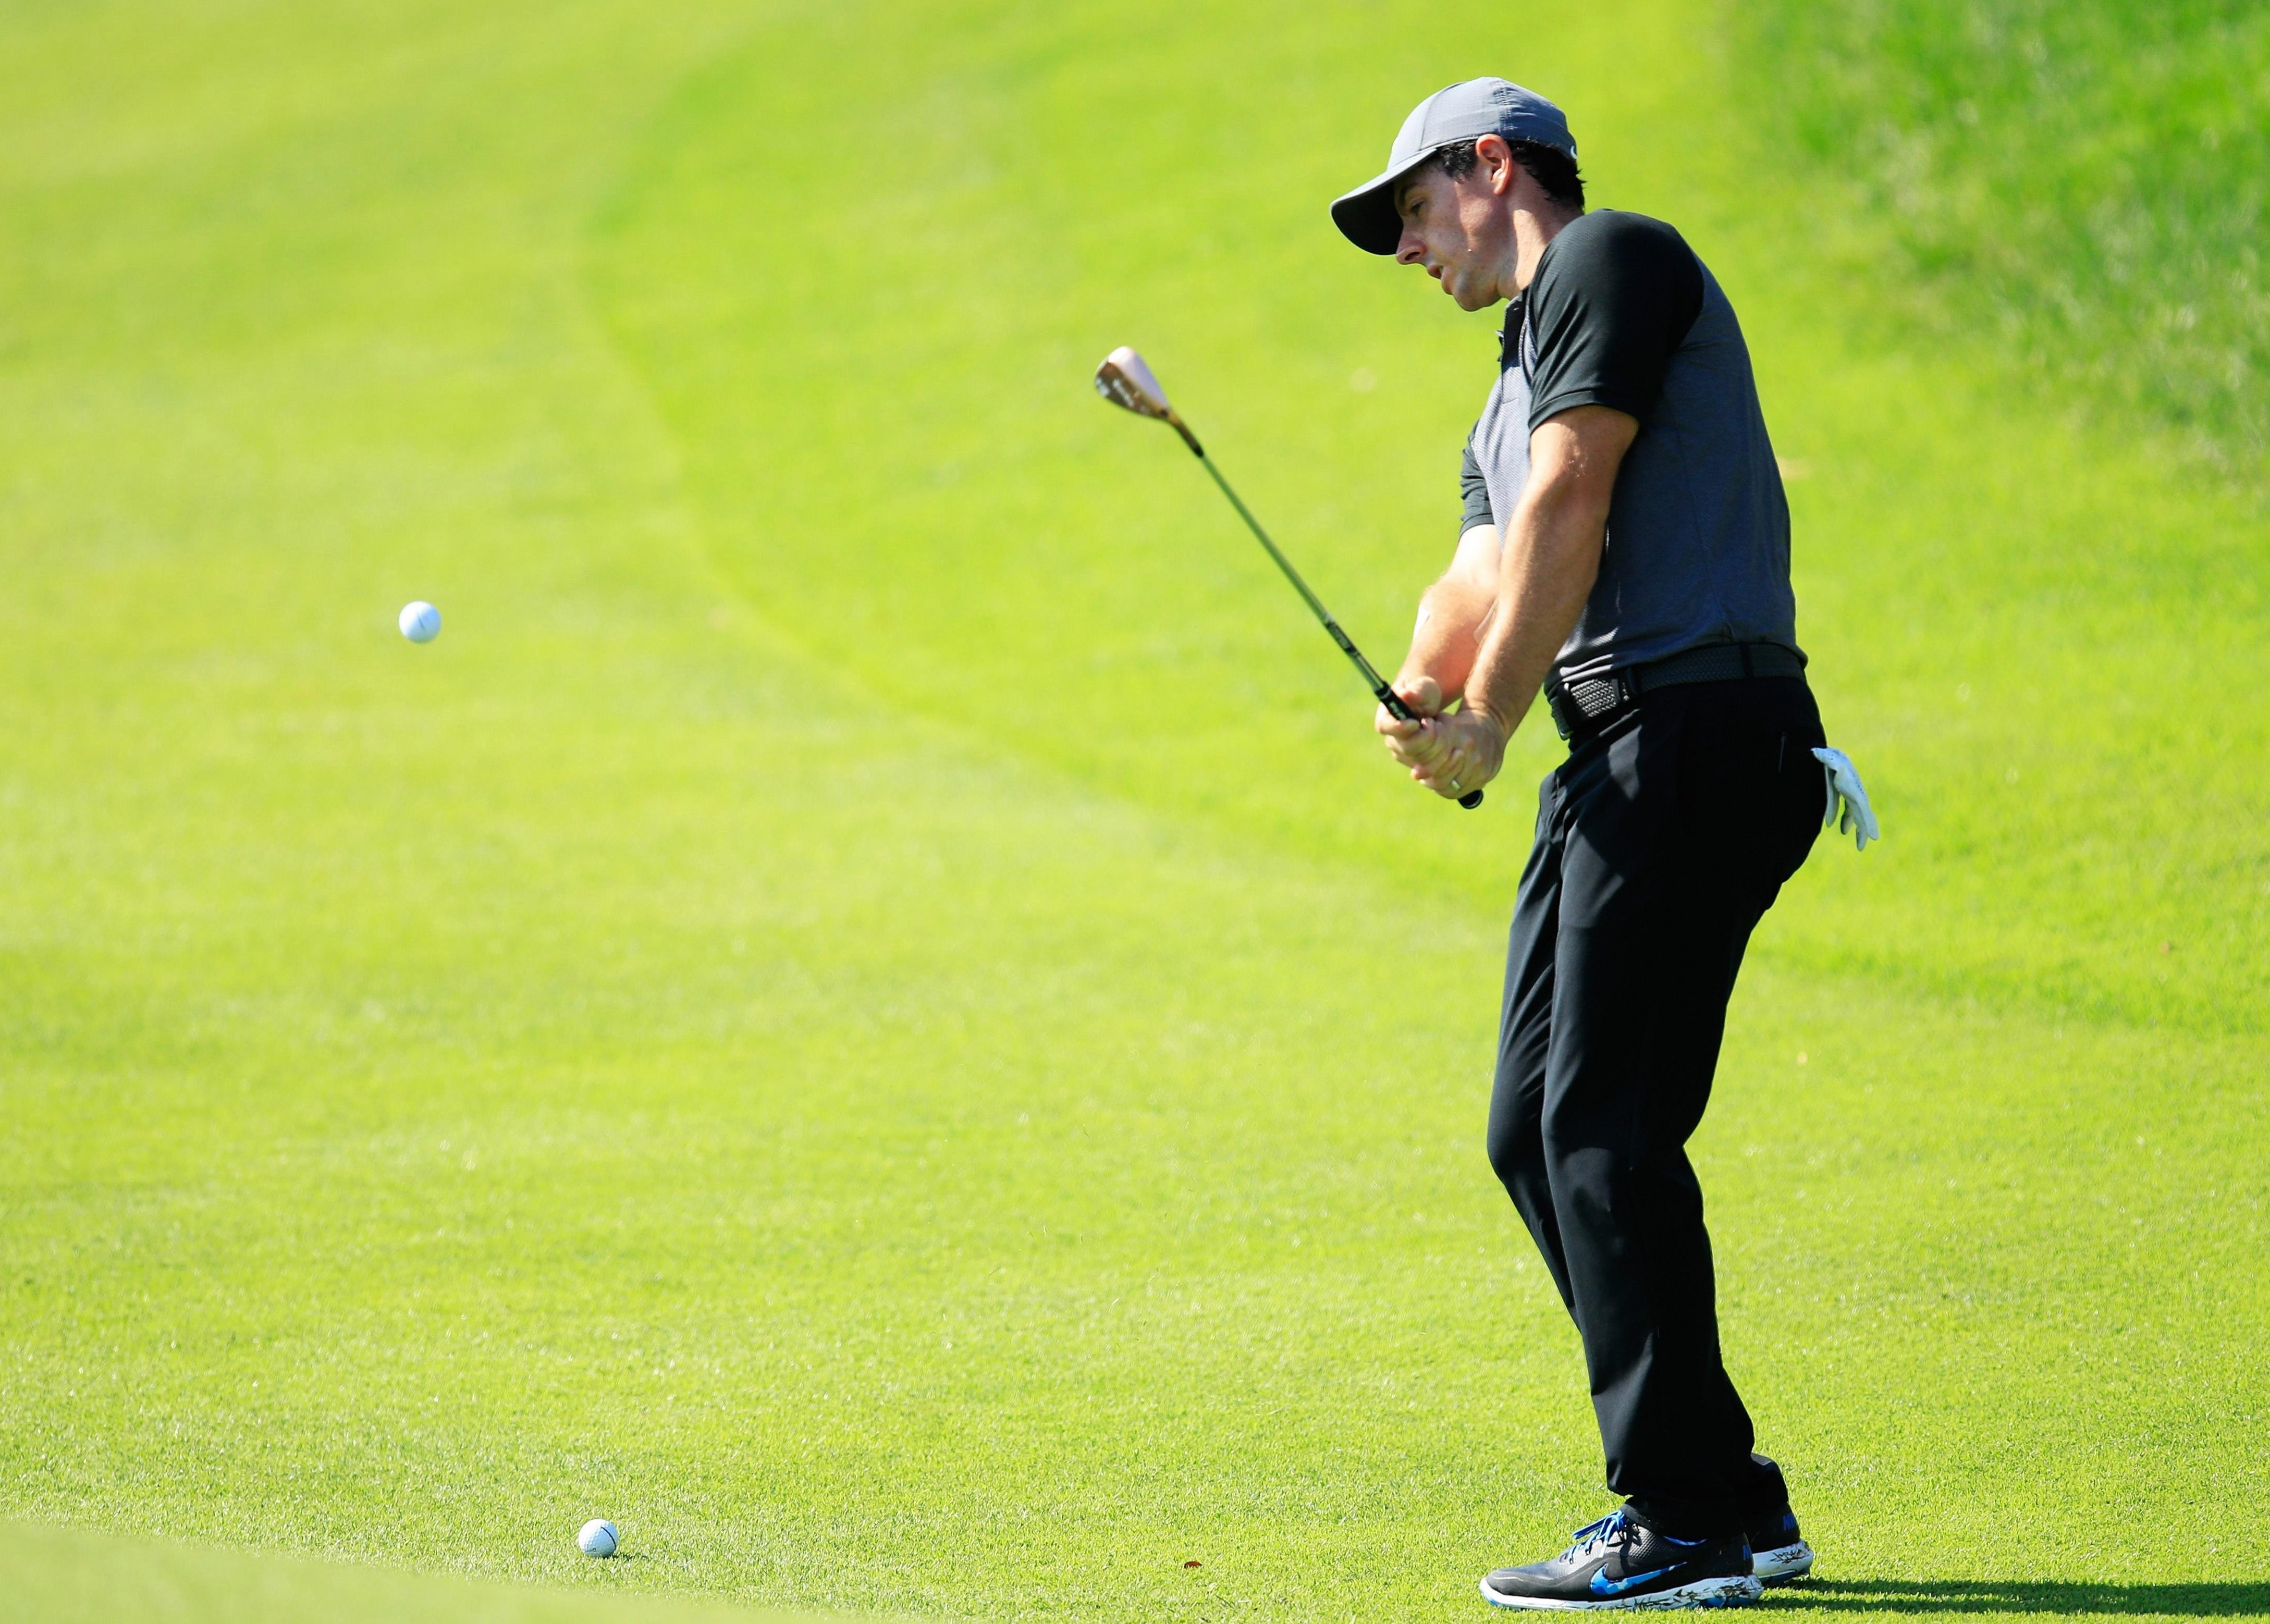 McIlroy put in plenty of time on his short game during a practice round